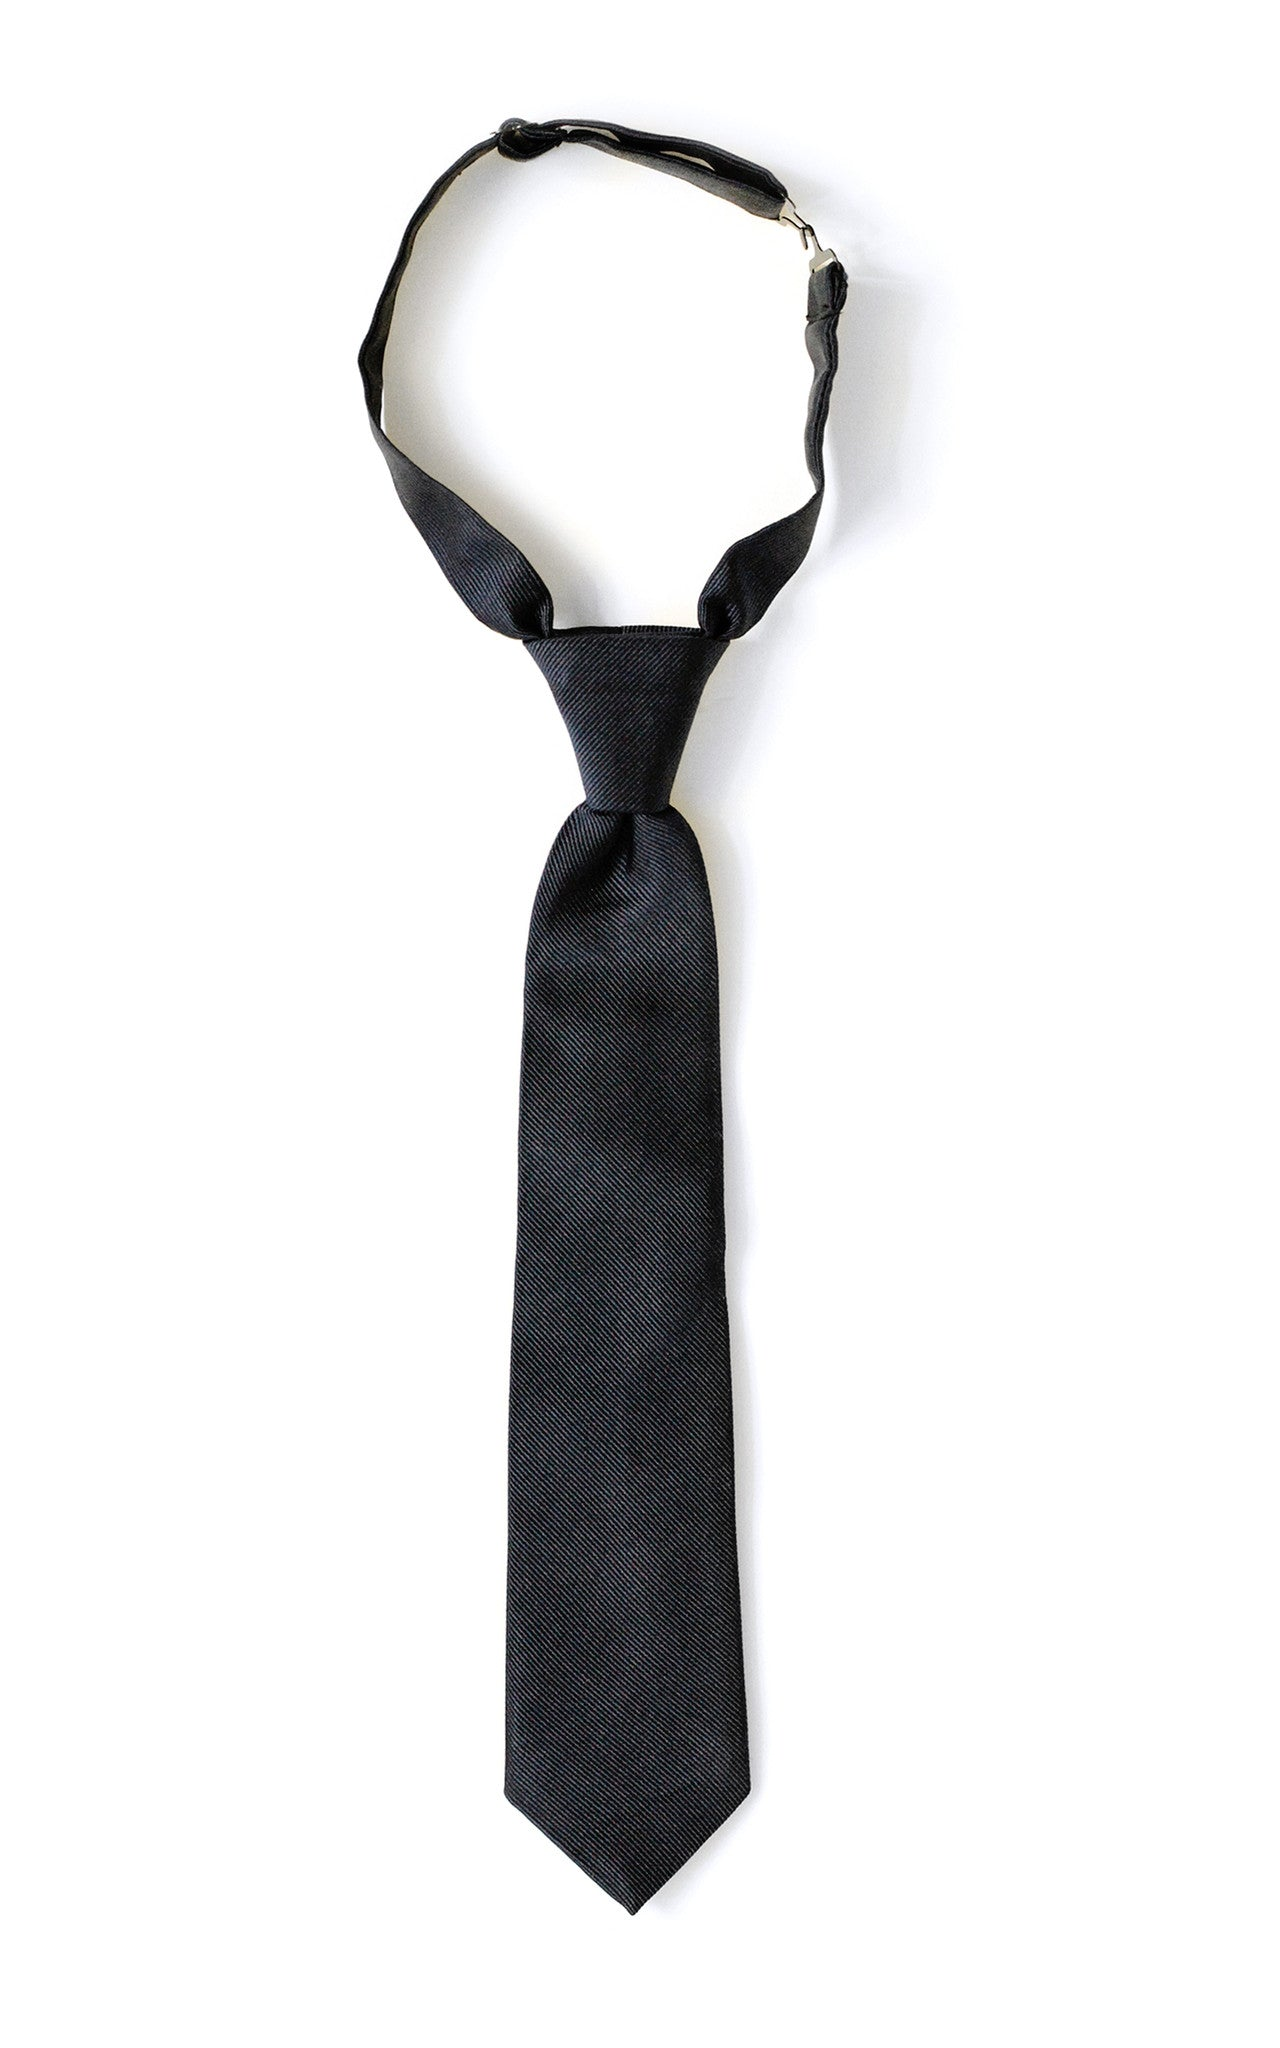 New York Necktie